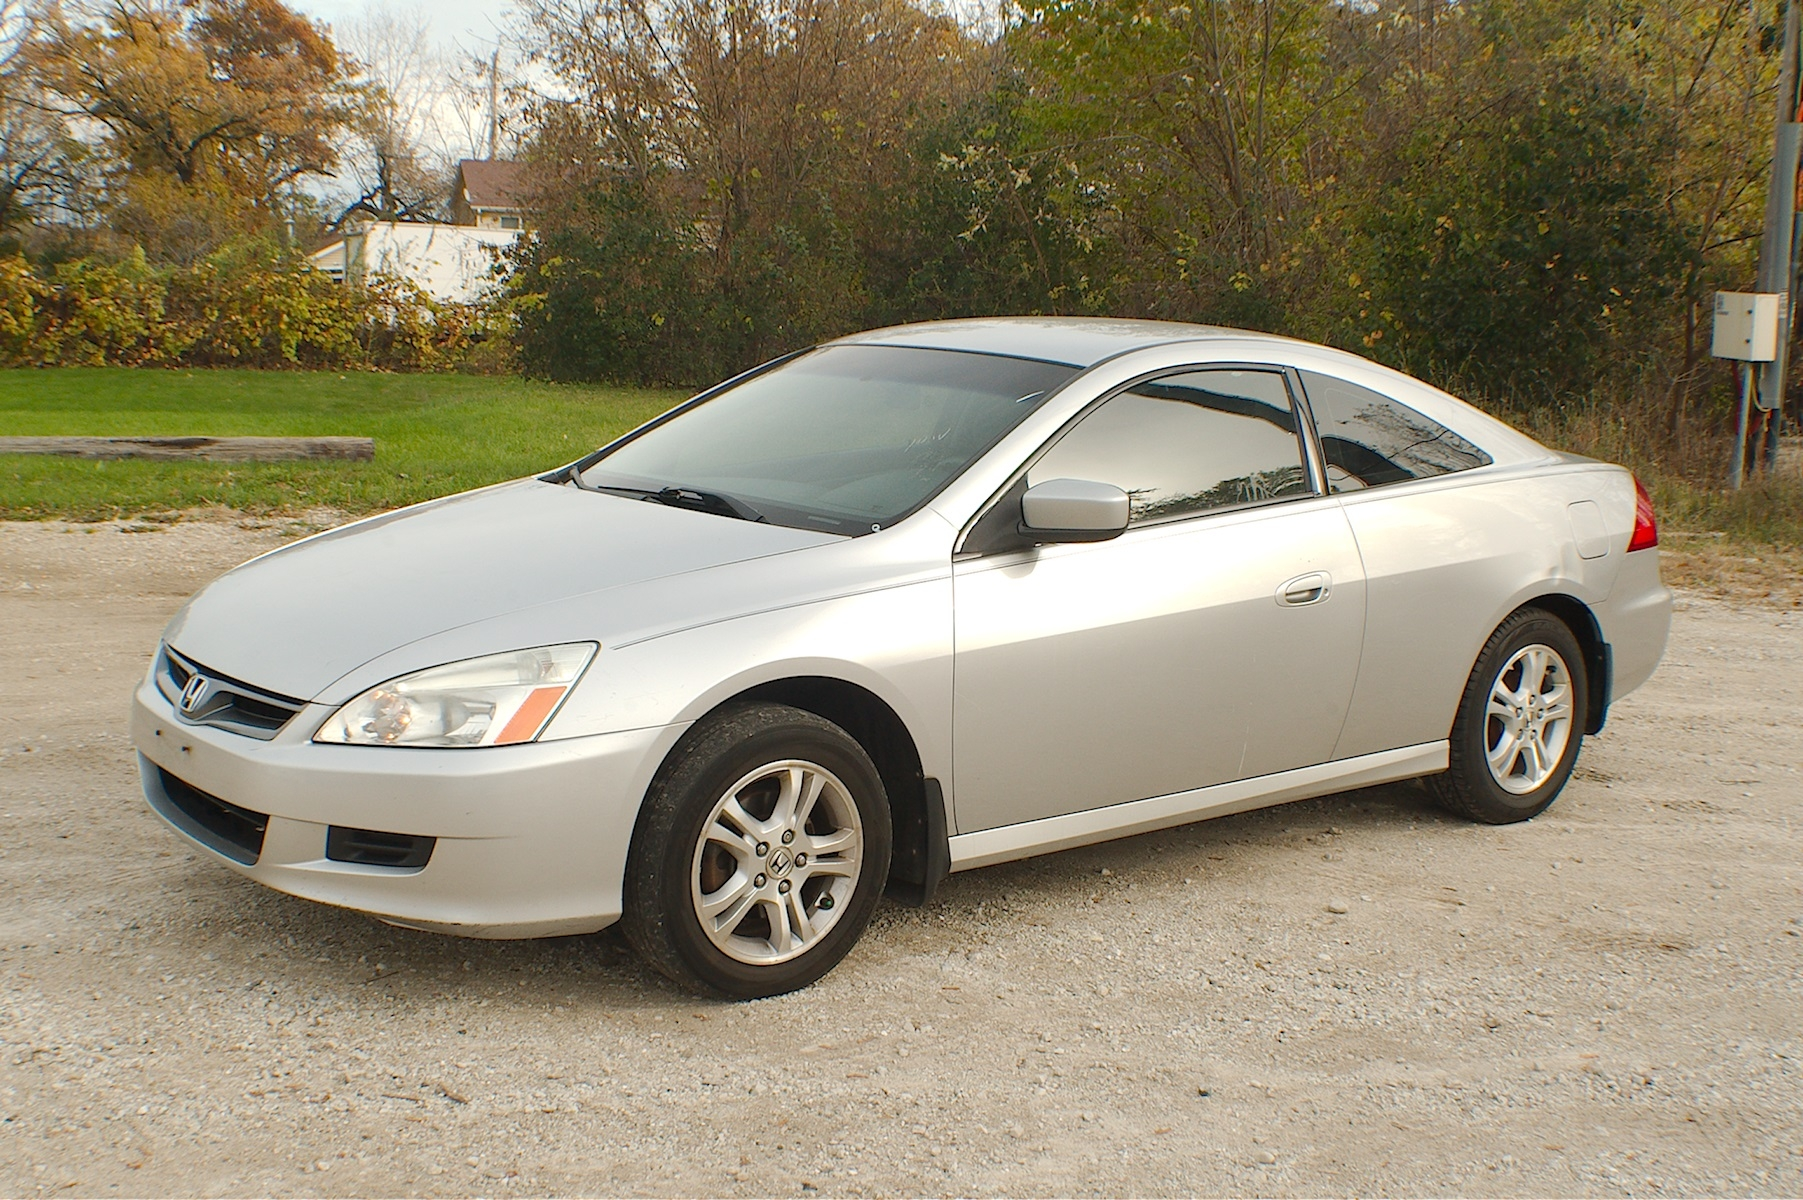 new la of title sale lot orleans cert auctions carfinder for accord en auto on in copart honda ex view online salvaged right gold